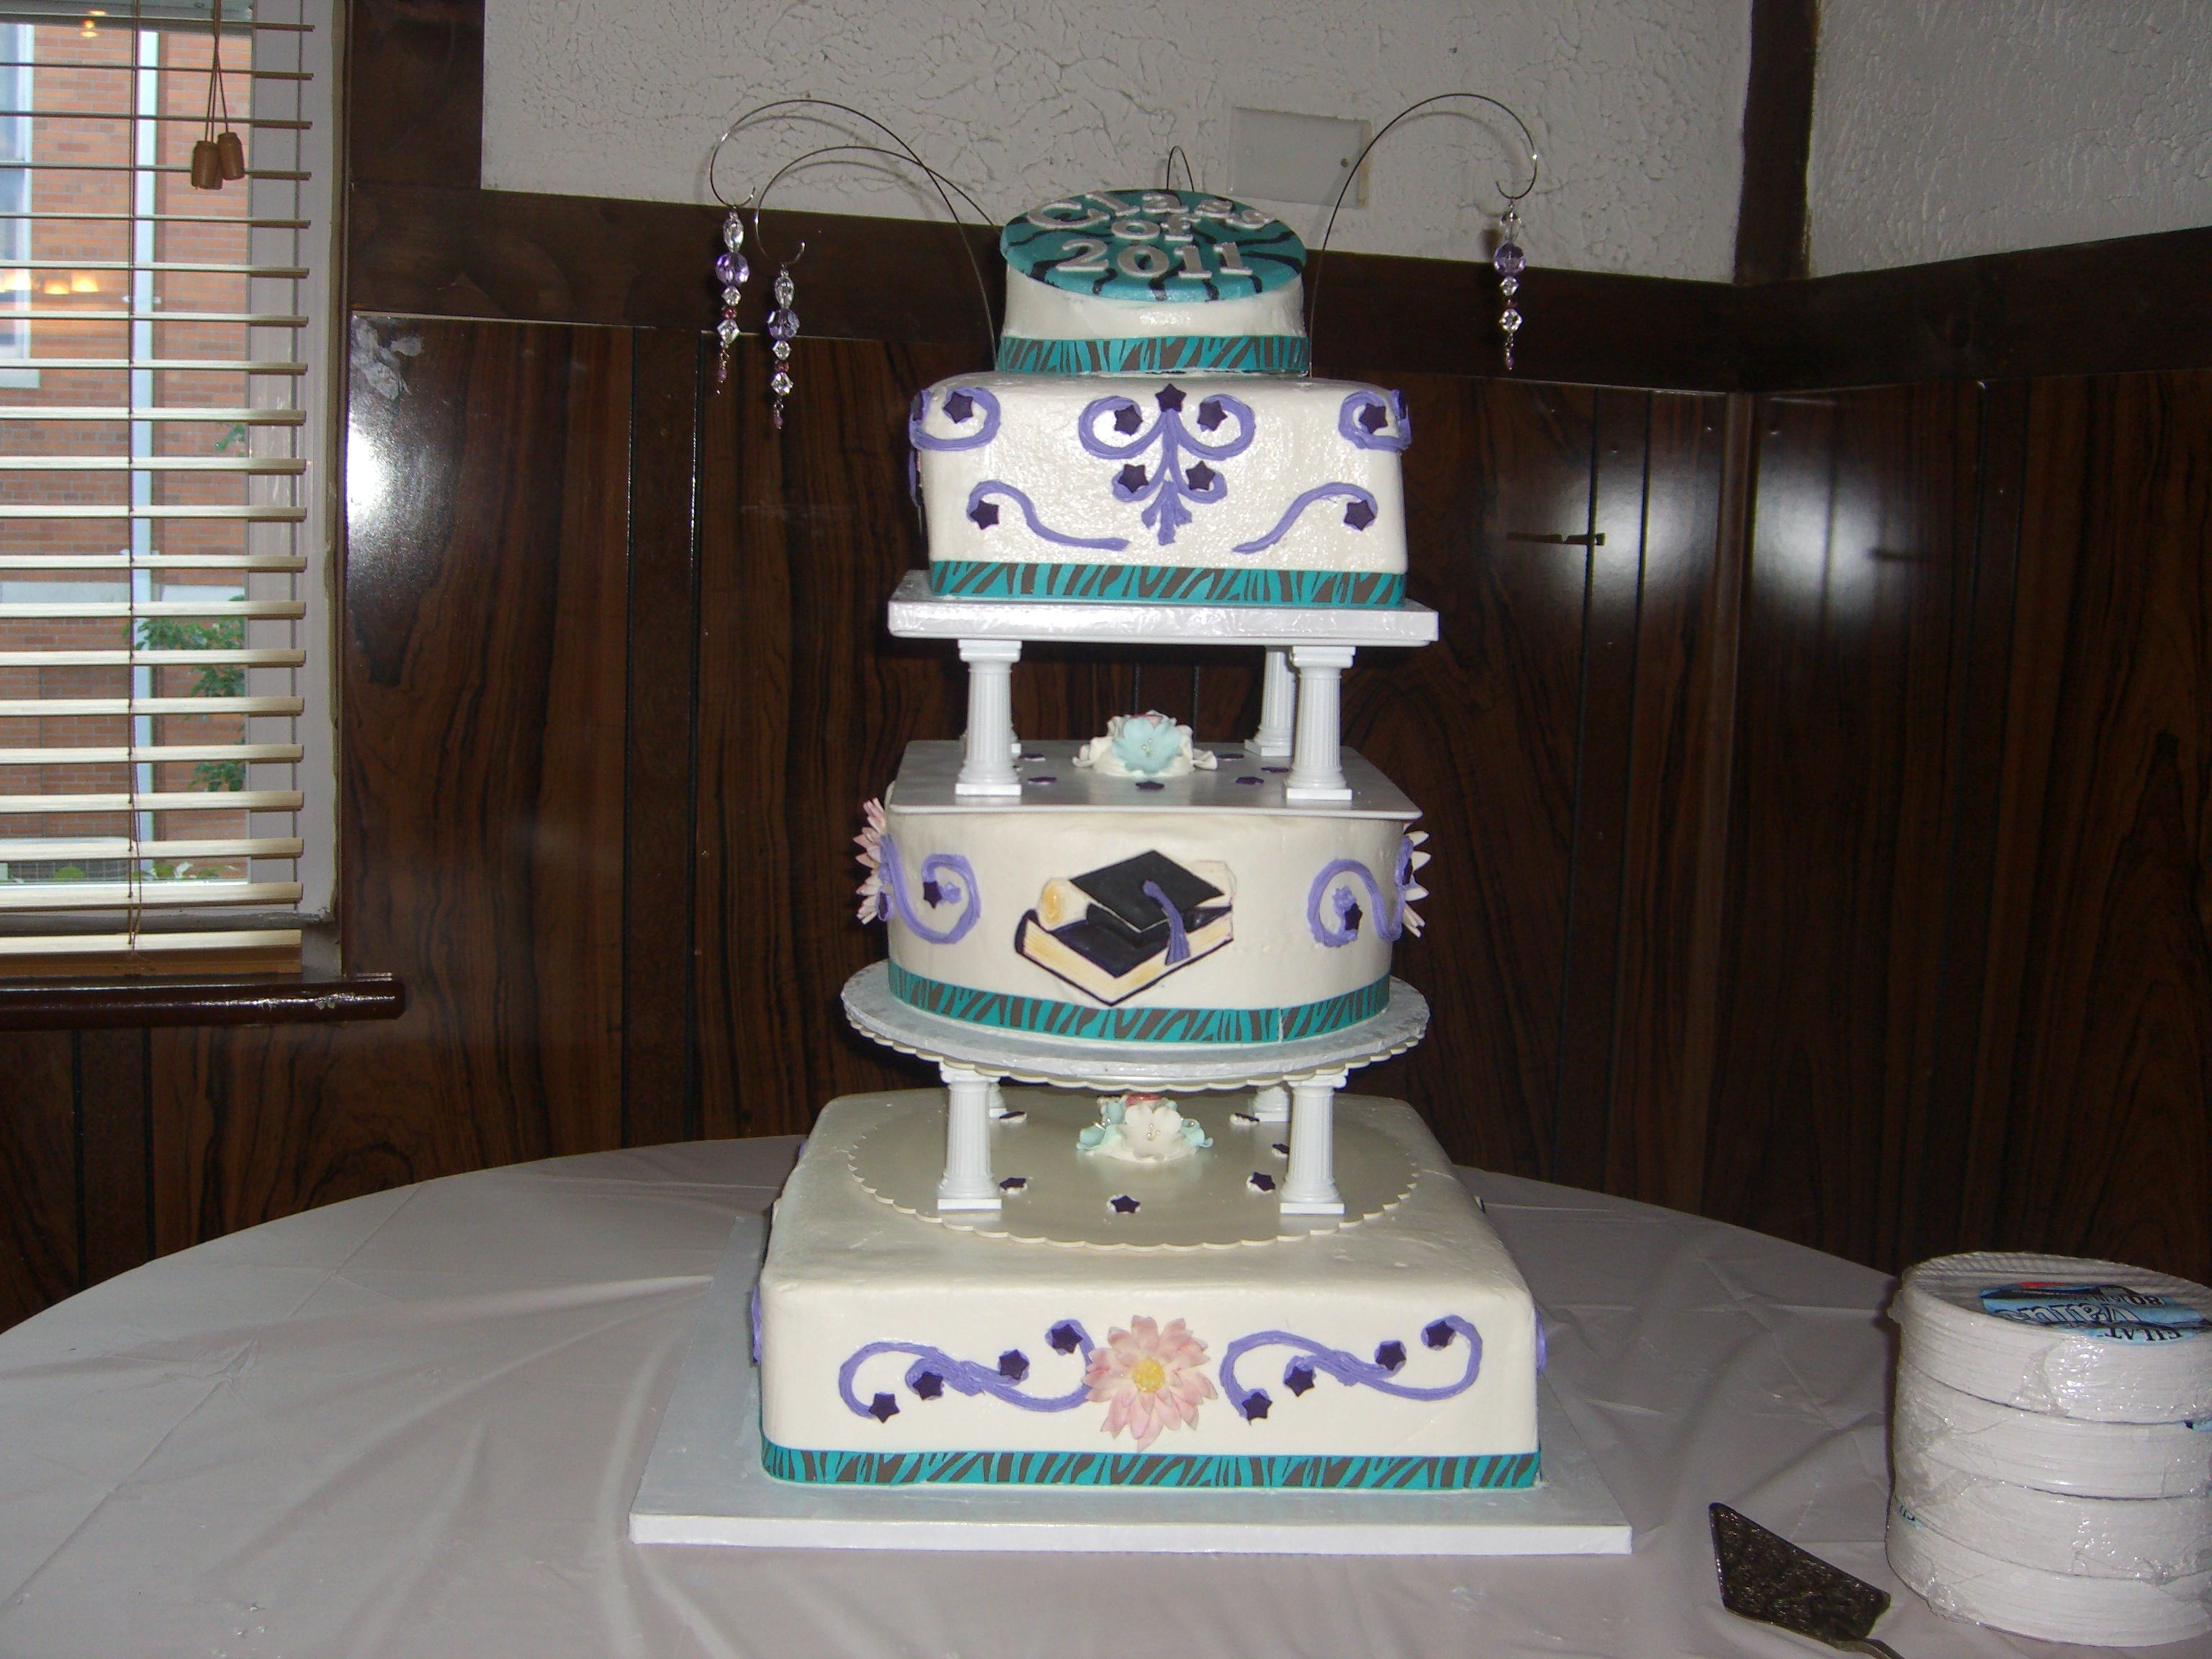 High School Graduation - Buttercream covered cake, cookies and cream filling. Top litle cake covered in fondant.